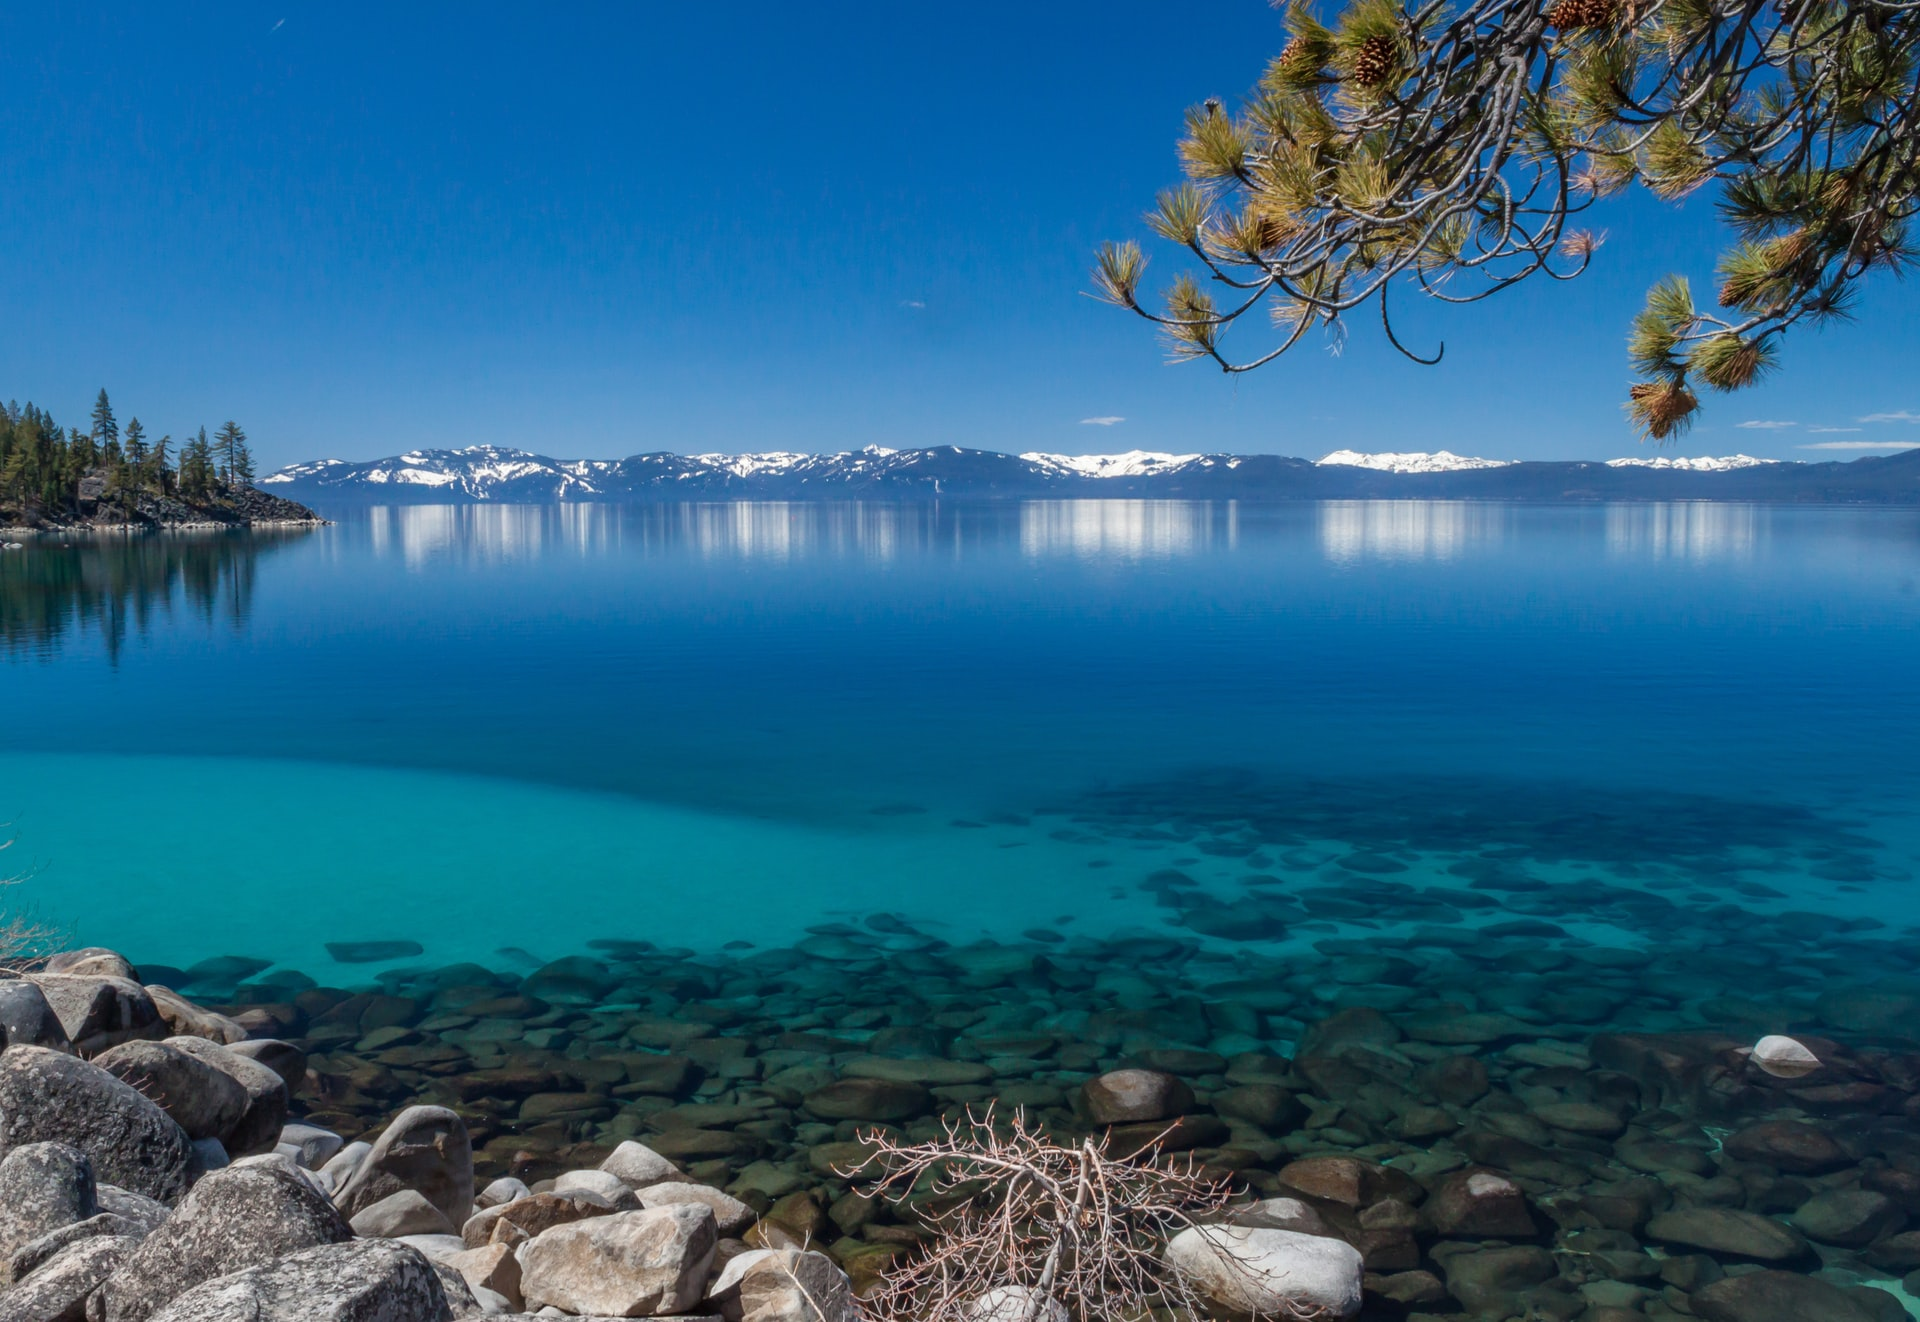 Casinos in Lake Tahoe, Nevada Offer a Variety of Outdoor Adventures